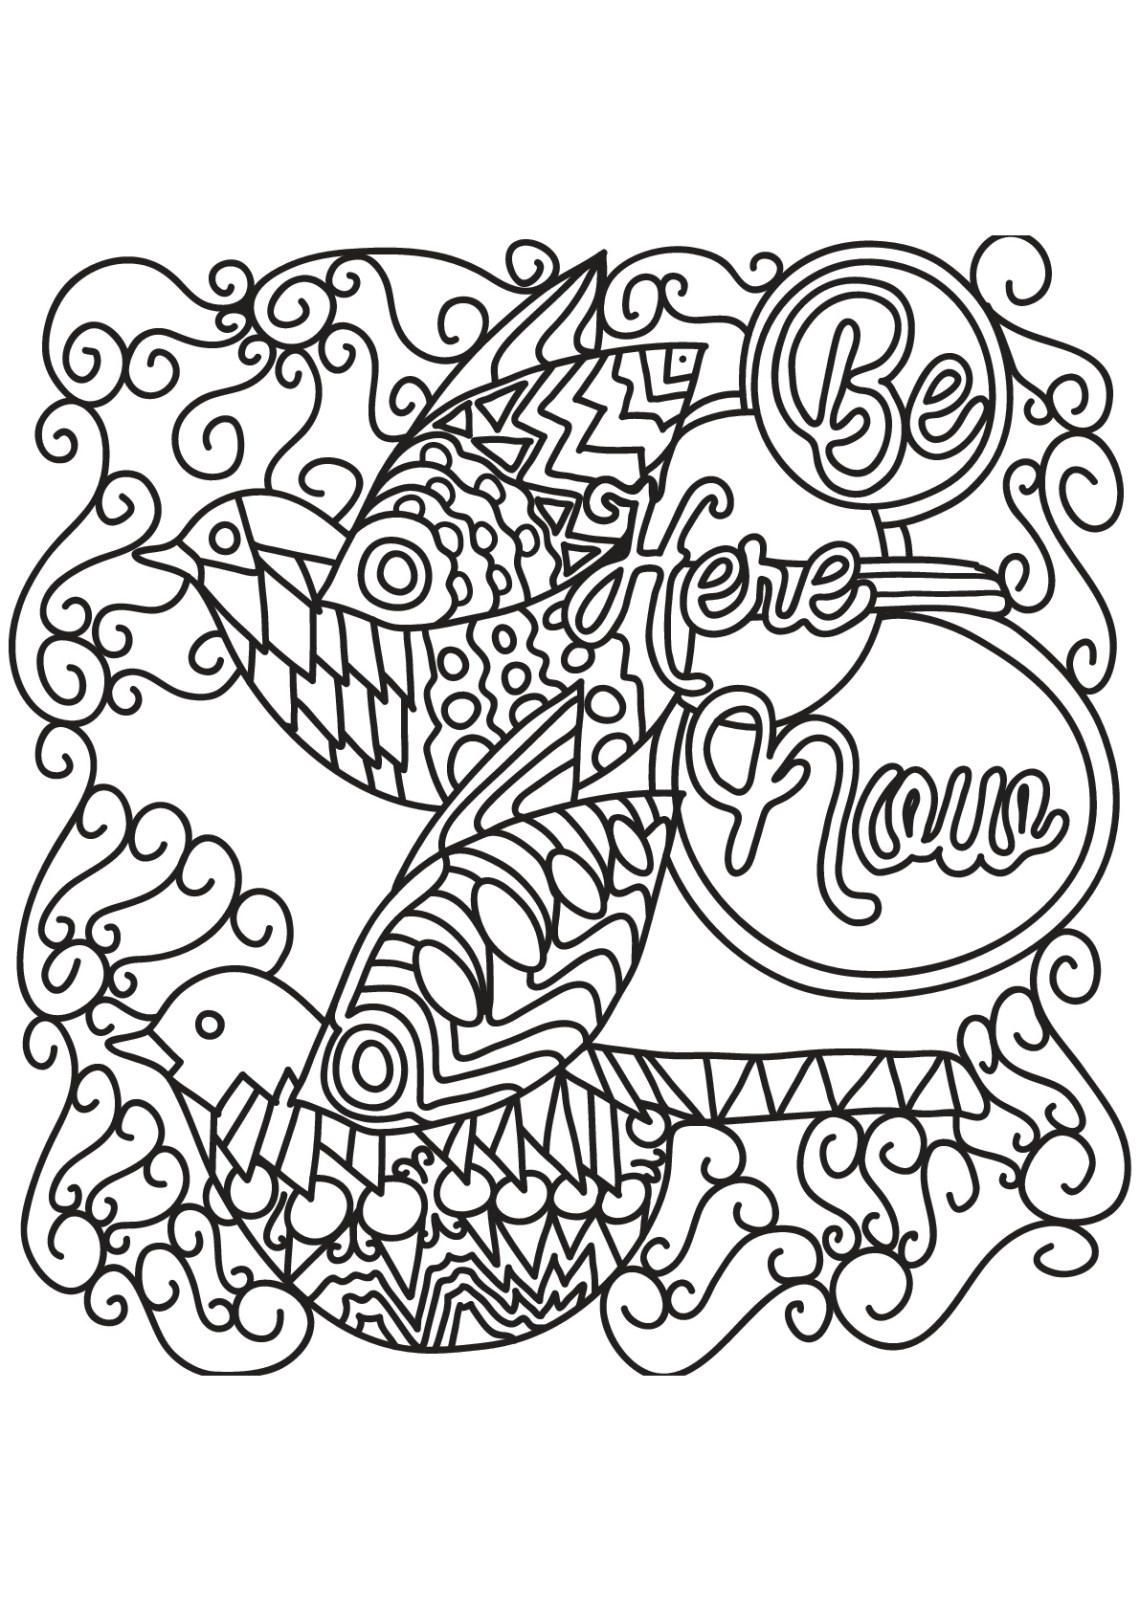 Free book quote 16 - Quotes Adult Coloring Pages | printable coloring sheets with quotes